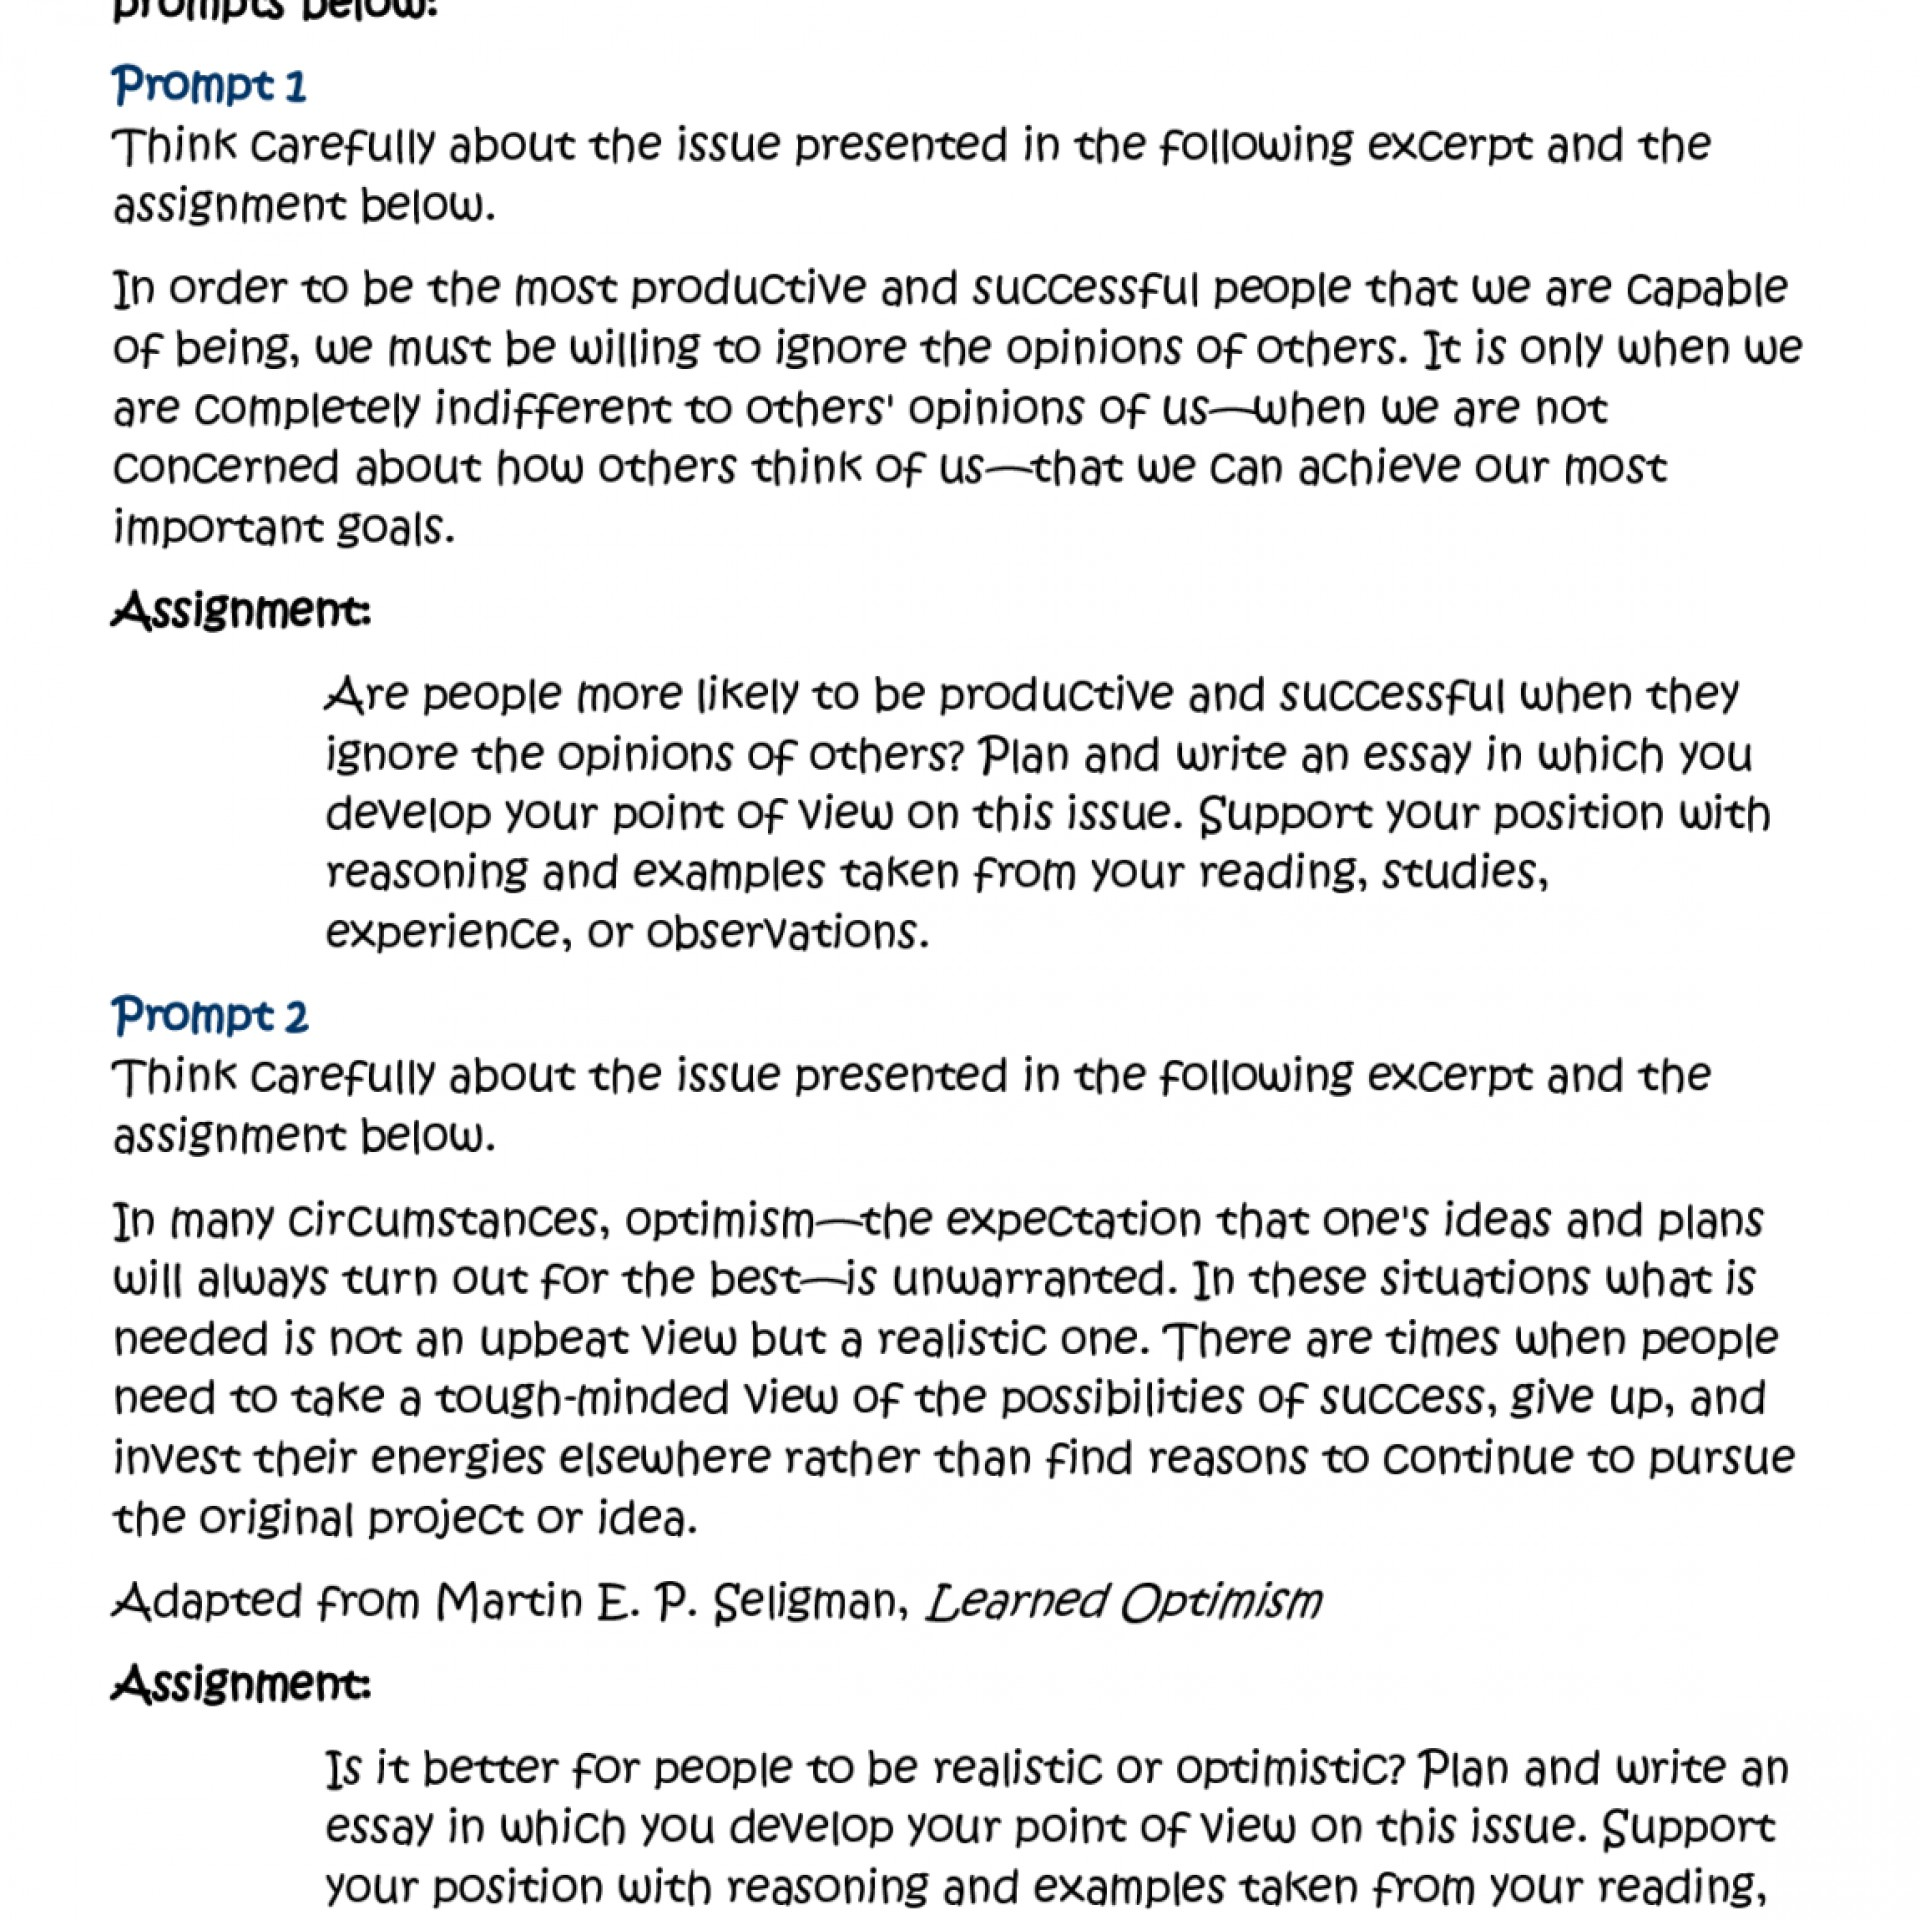 018 Sat Essay Format Example Cover Letter Best General Writing Tipsgsat At Examples And Of Question Jimmy Carter To Answer Everyromptrepscholar Breathtaking Guidelines Exam Paper Form 1920